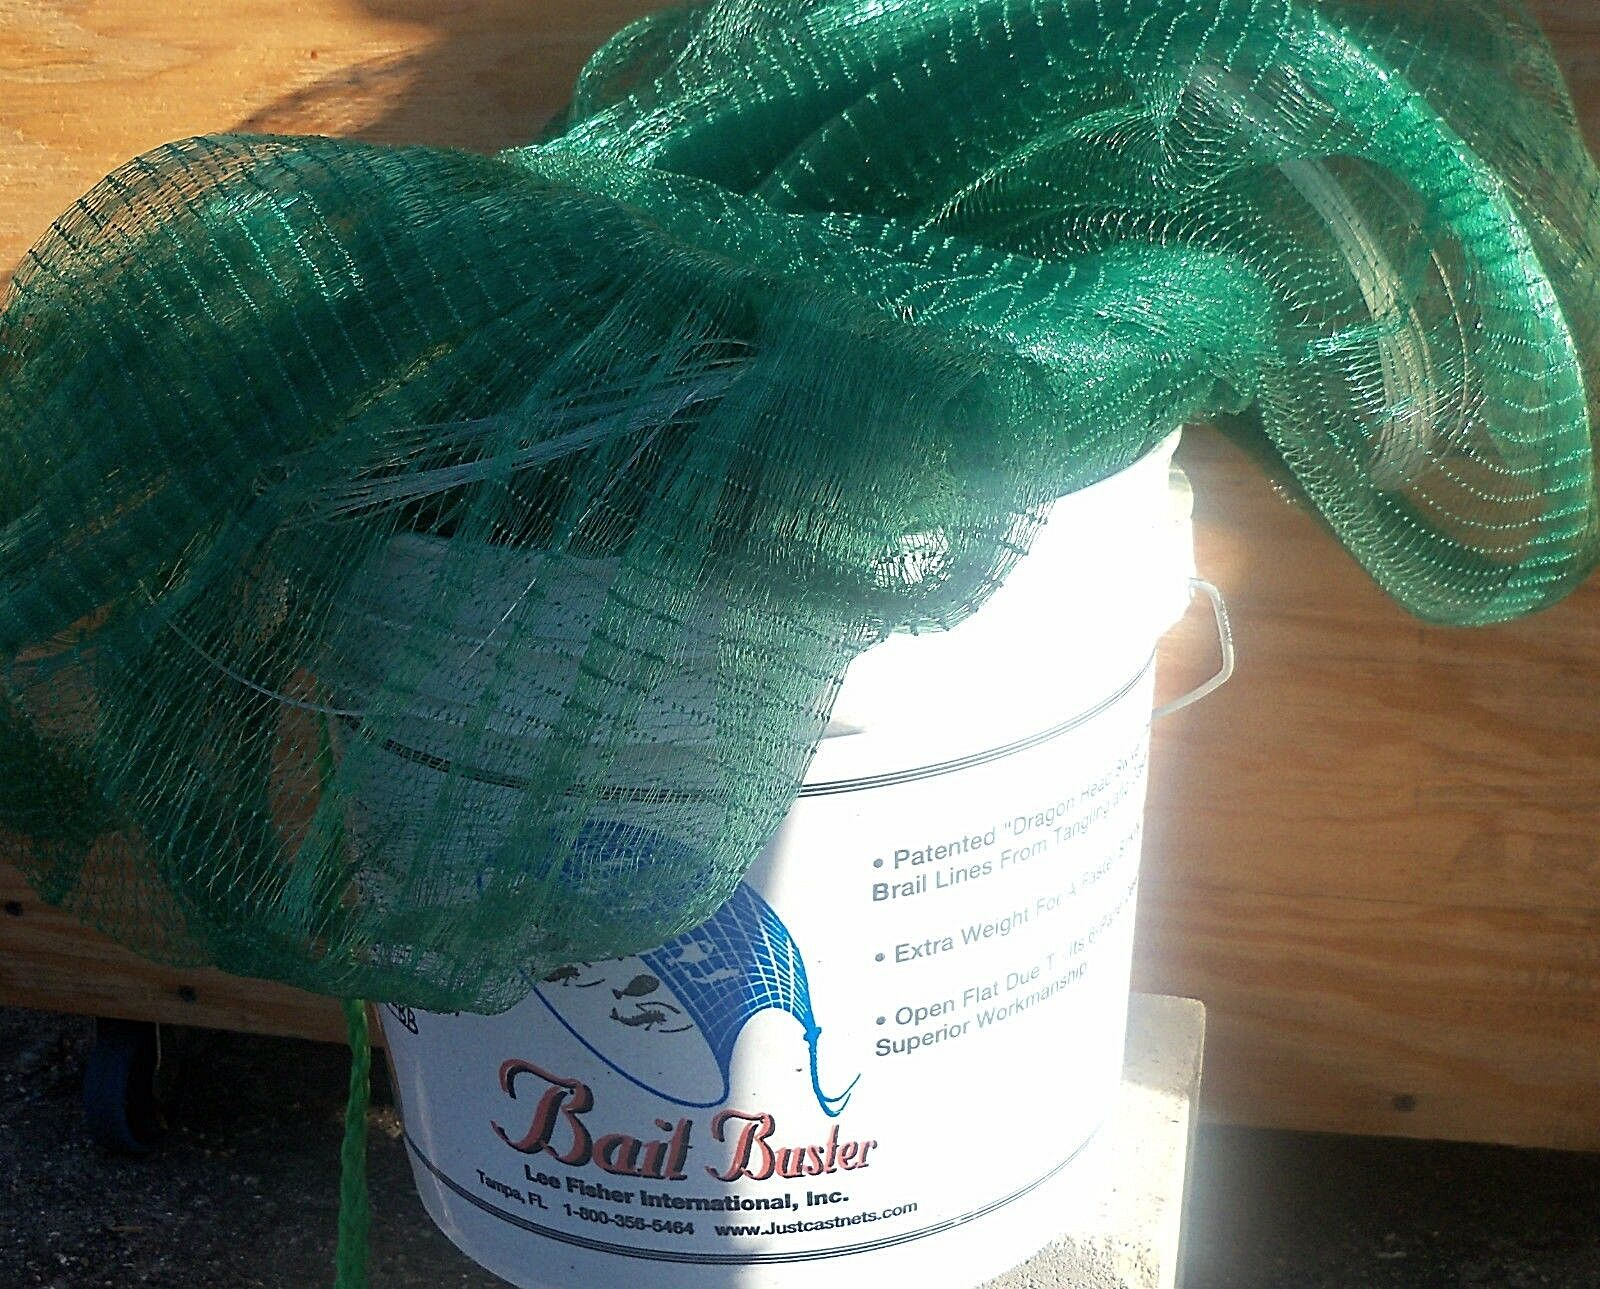 LEE FISHER  6'  RADIUS, 1 2  SQUARE BAIT BUSTER GREEN PREMIUM CAST NET 6 PANEL  free delivery and returns